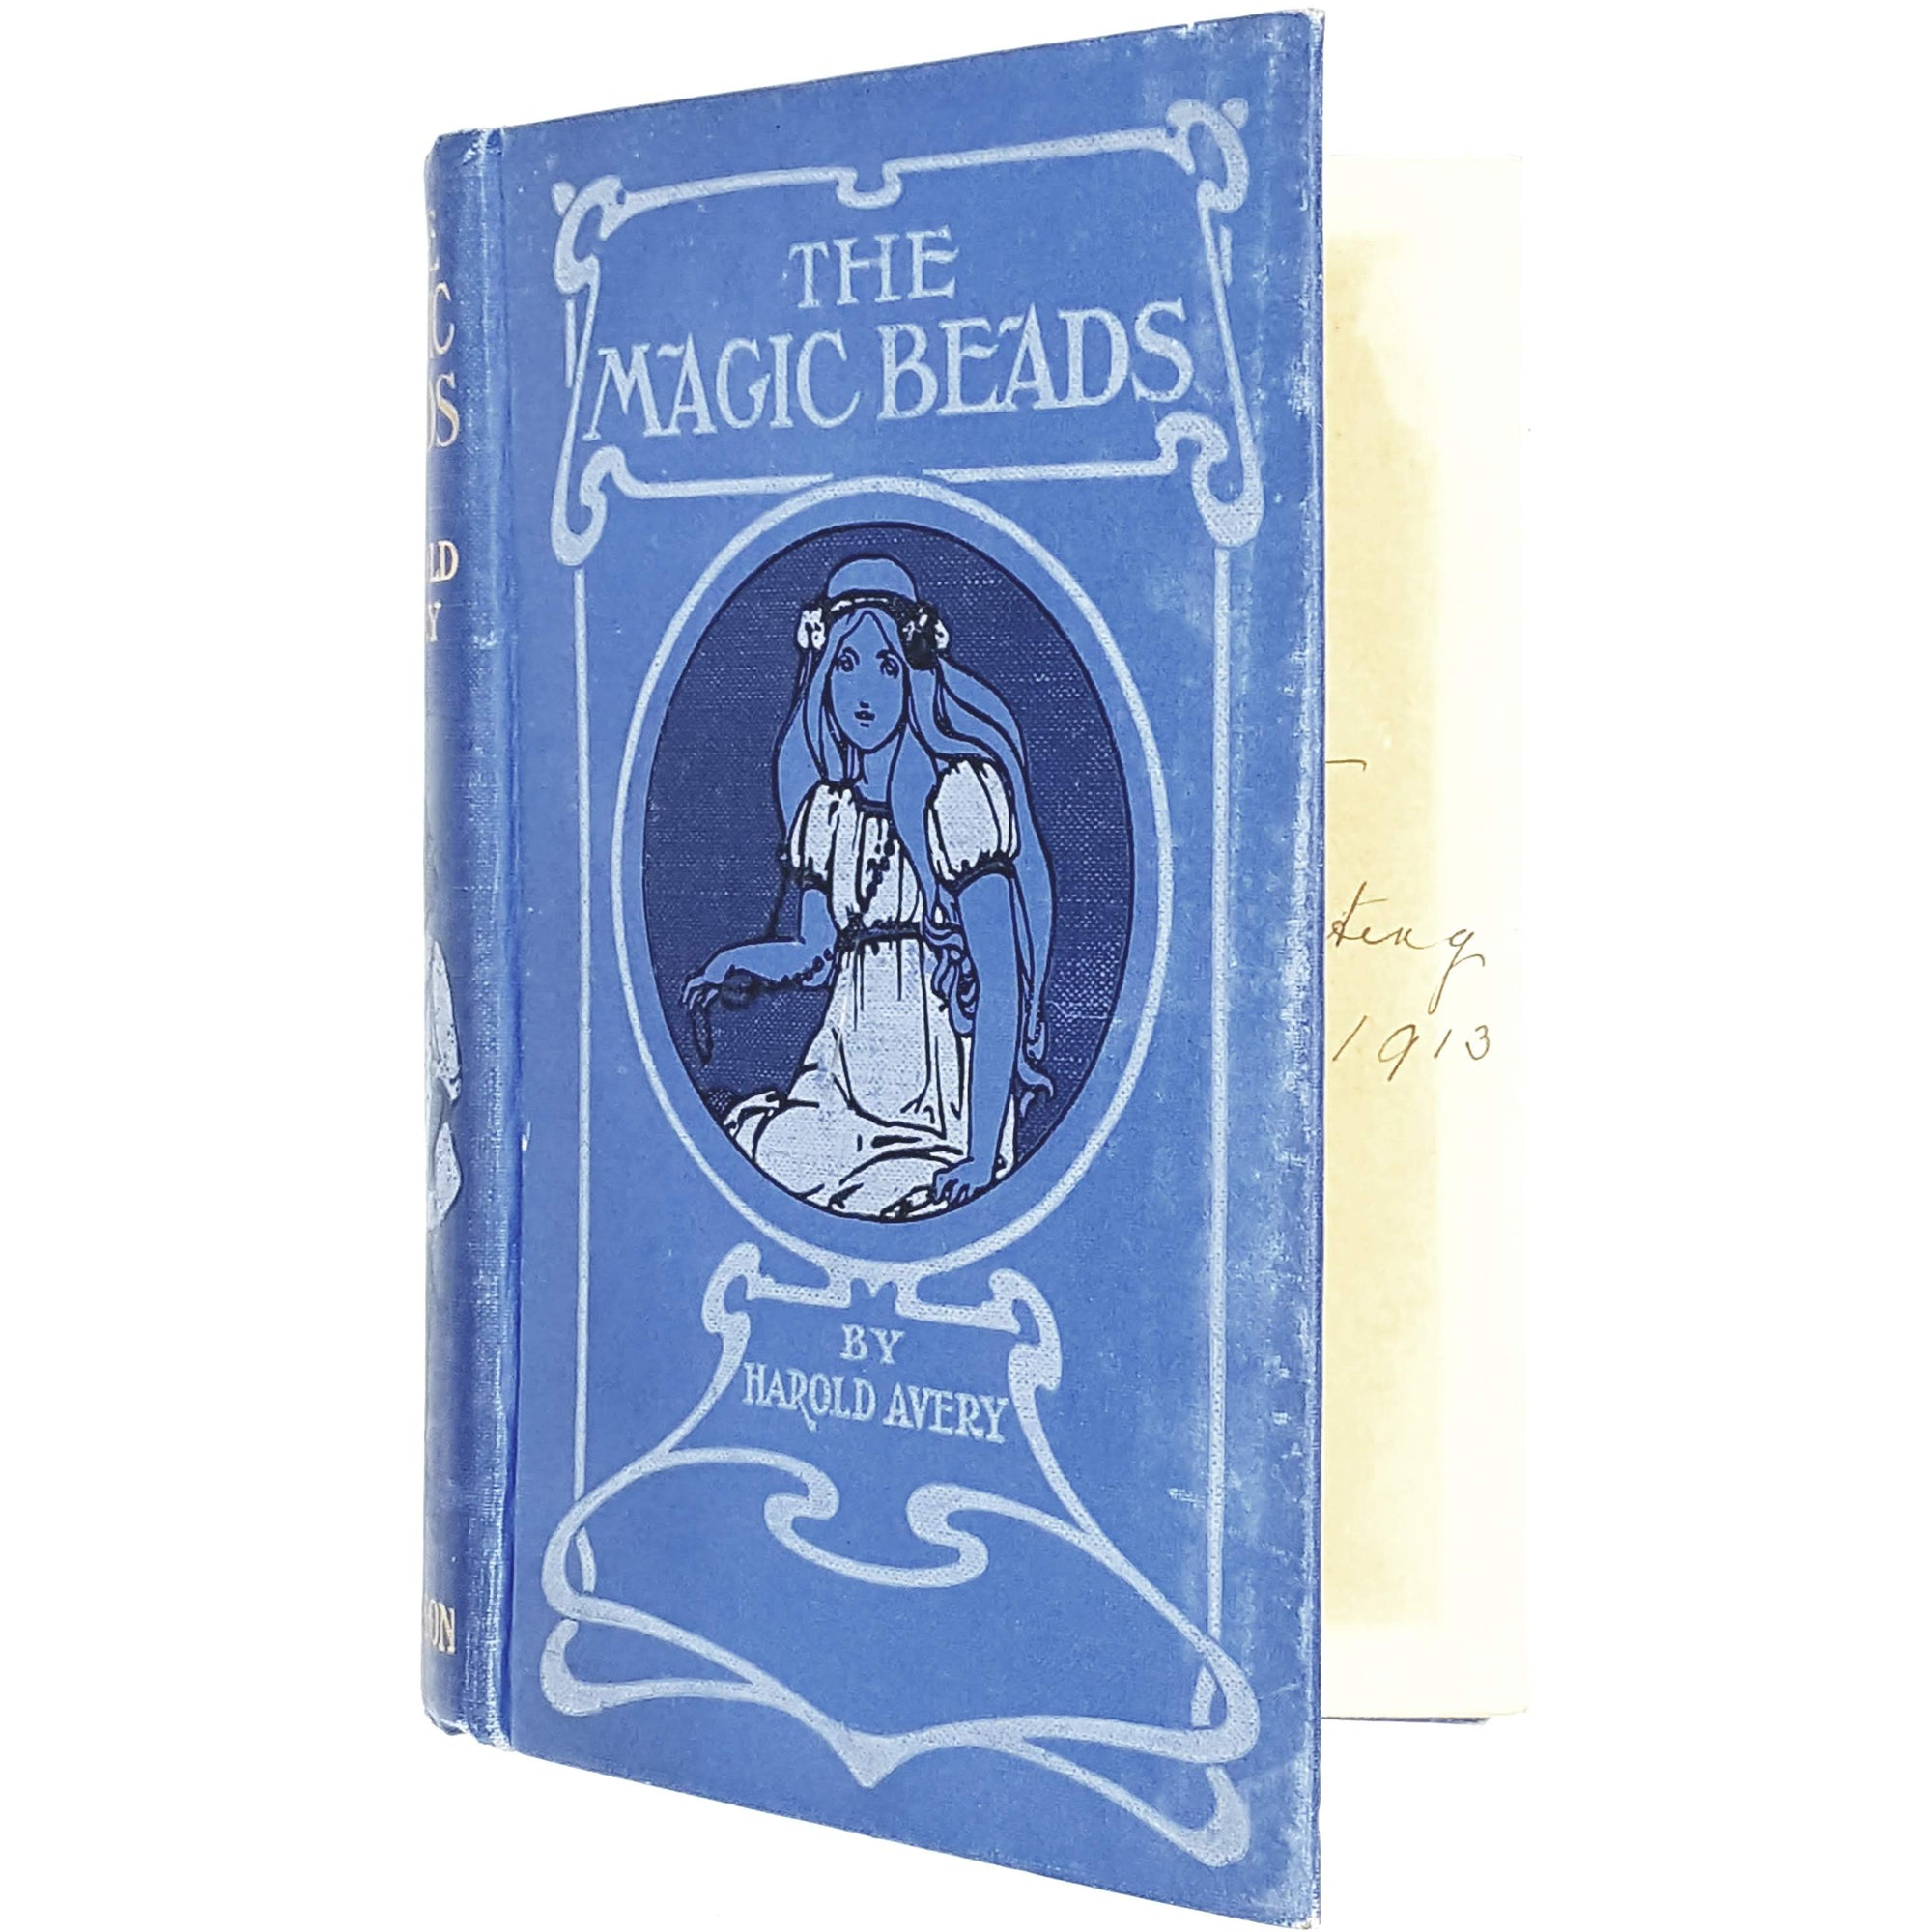 Illustrated The Magic Beads by Harold Avery c1913